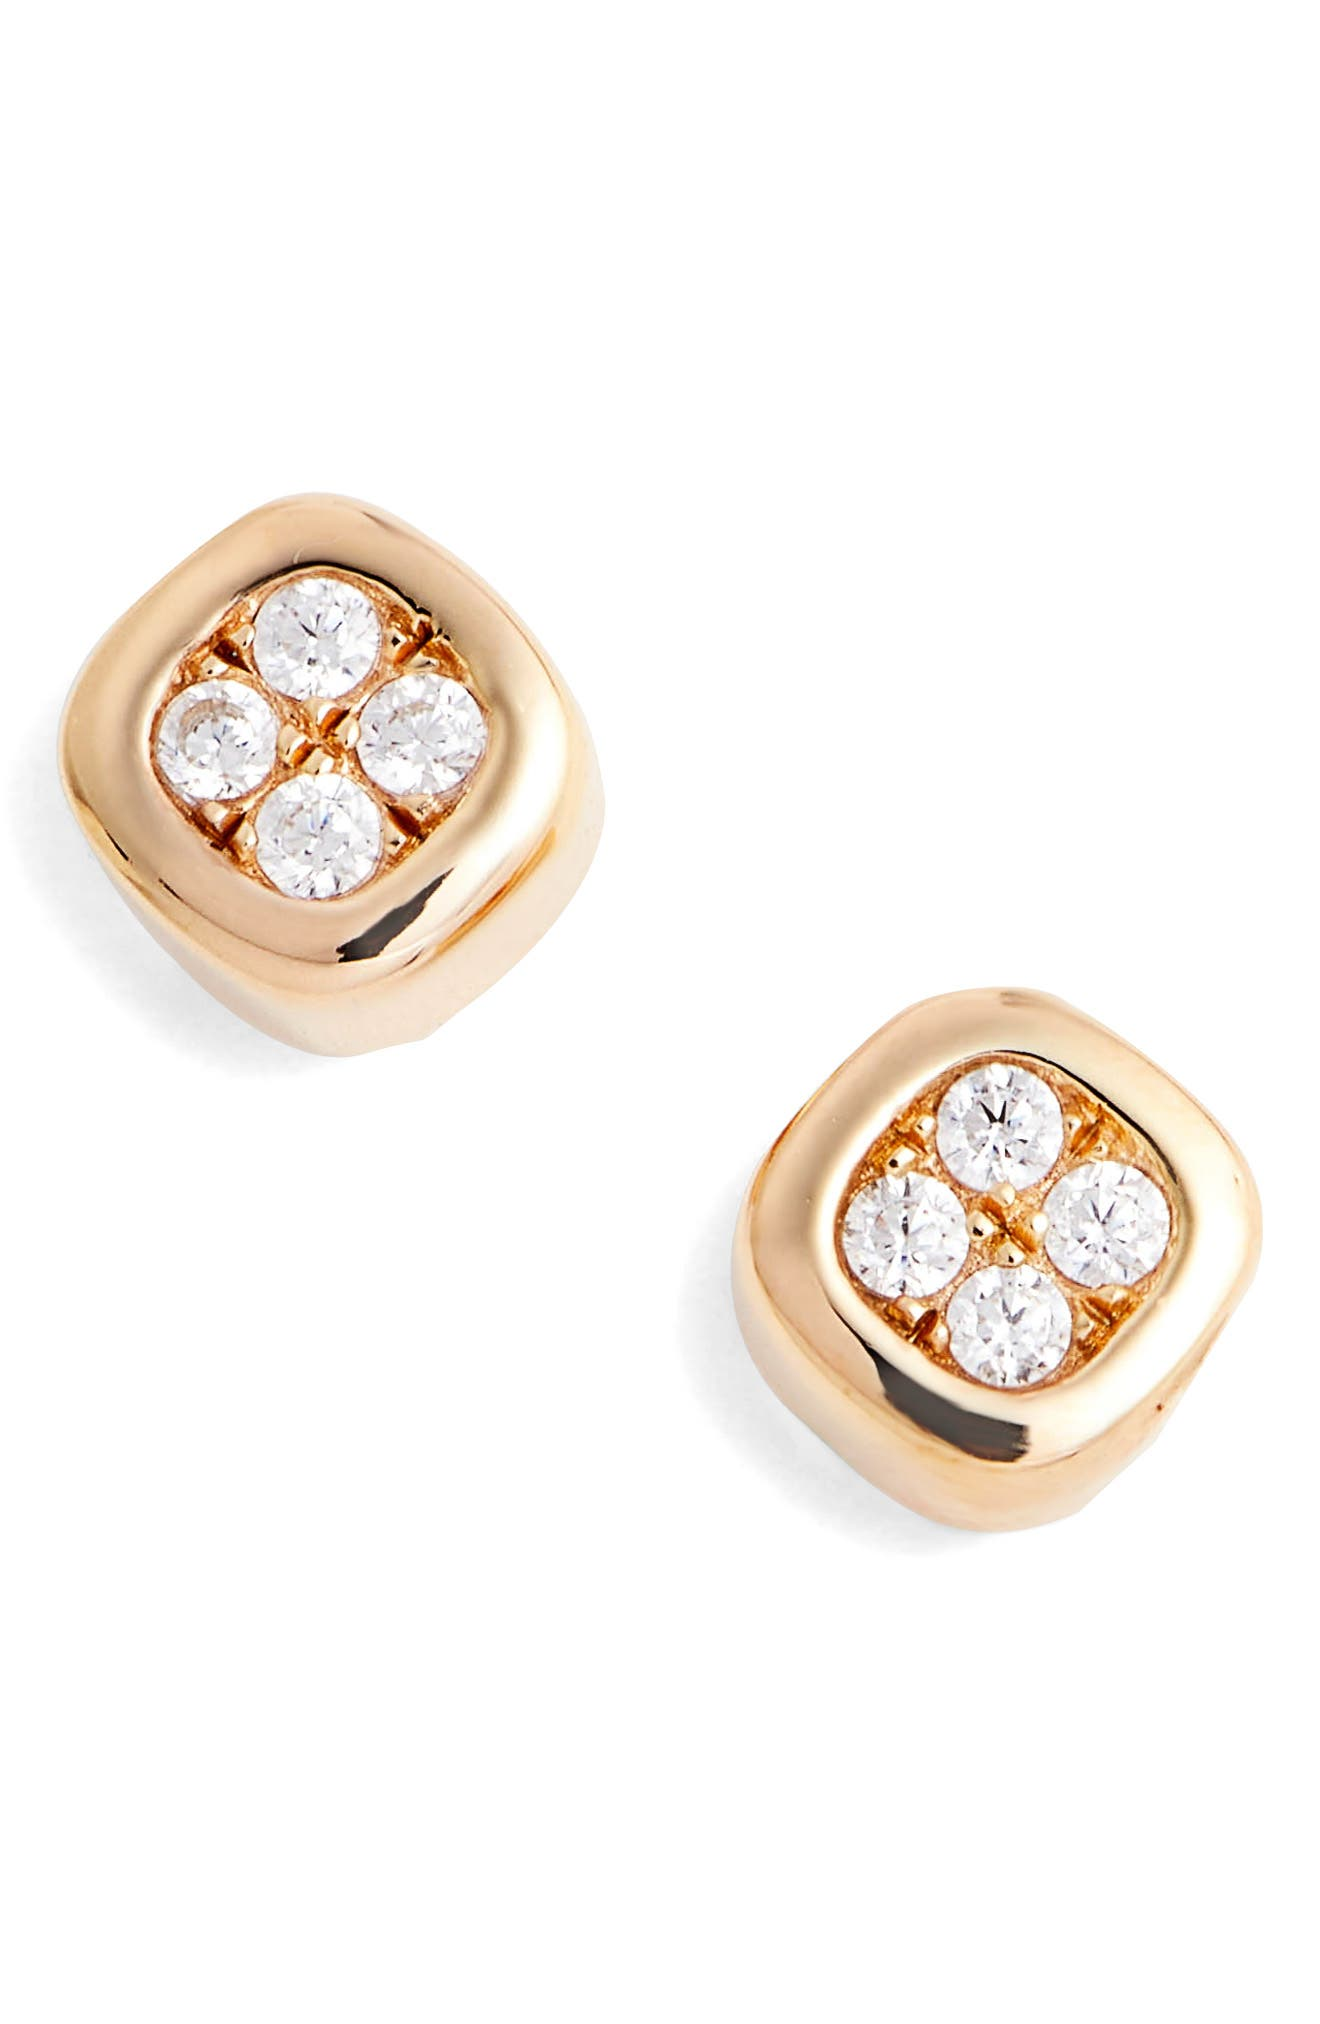 Foursquare Simulated Diamond Earrings,                         Main,                         color, SILVER/ GOLD/ CLEAR